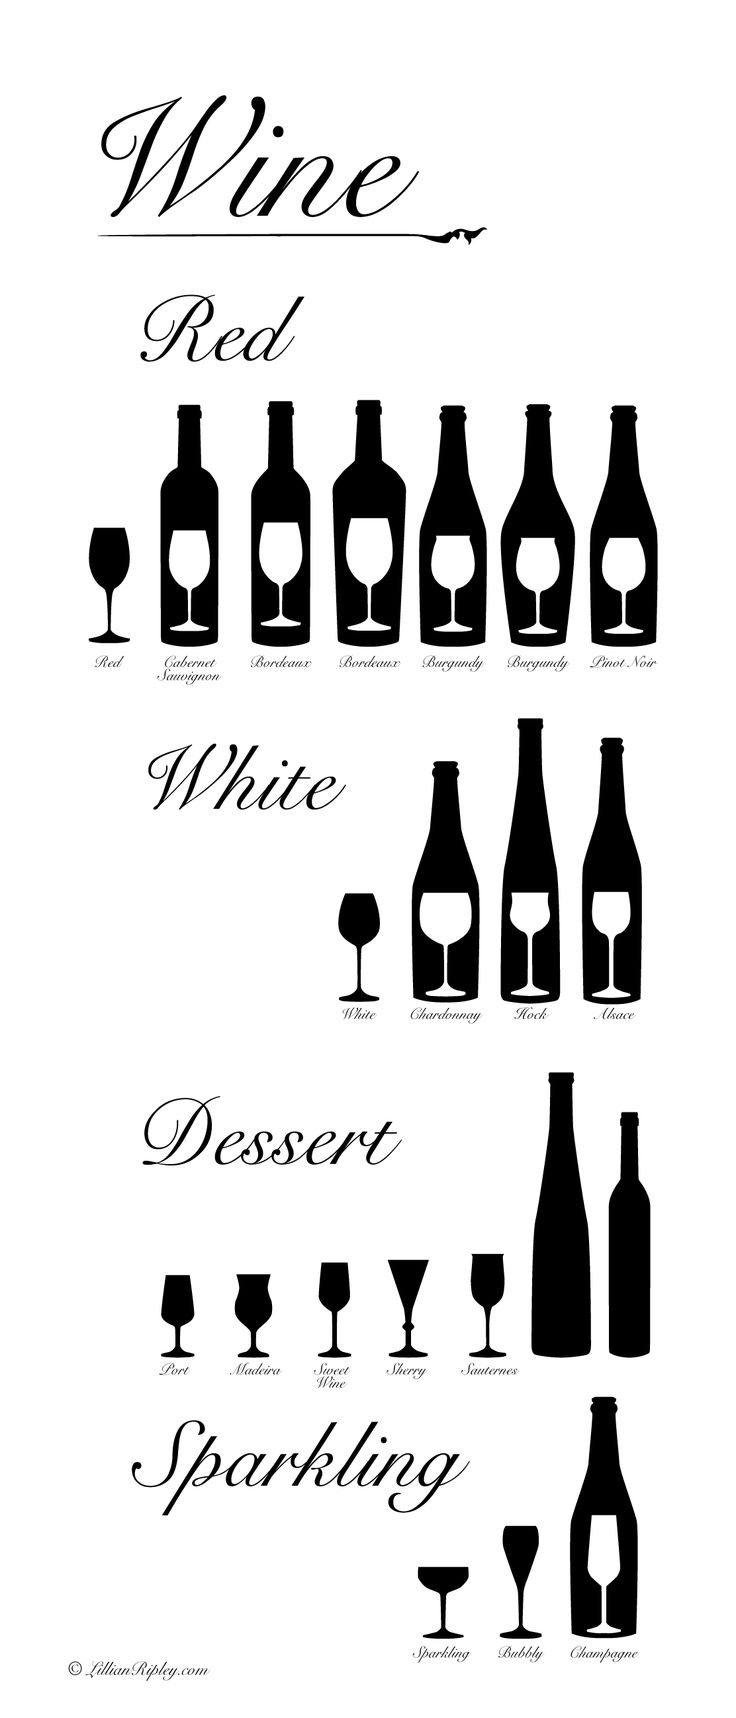 Wine Infographic - Shape of Wine Glass and Wine Bottles Information